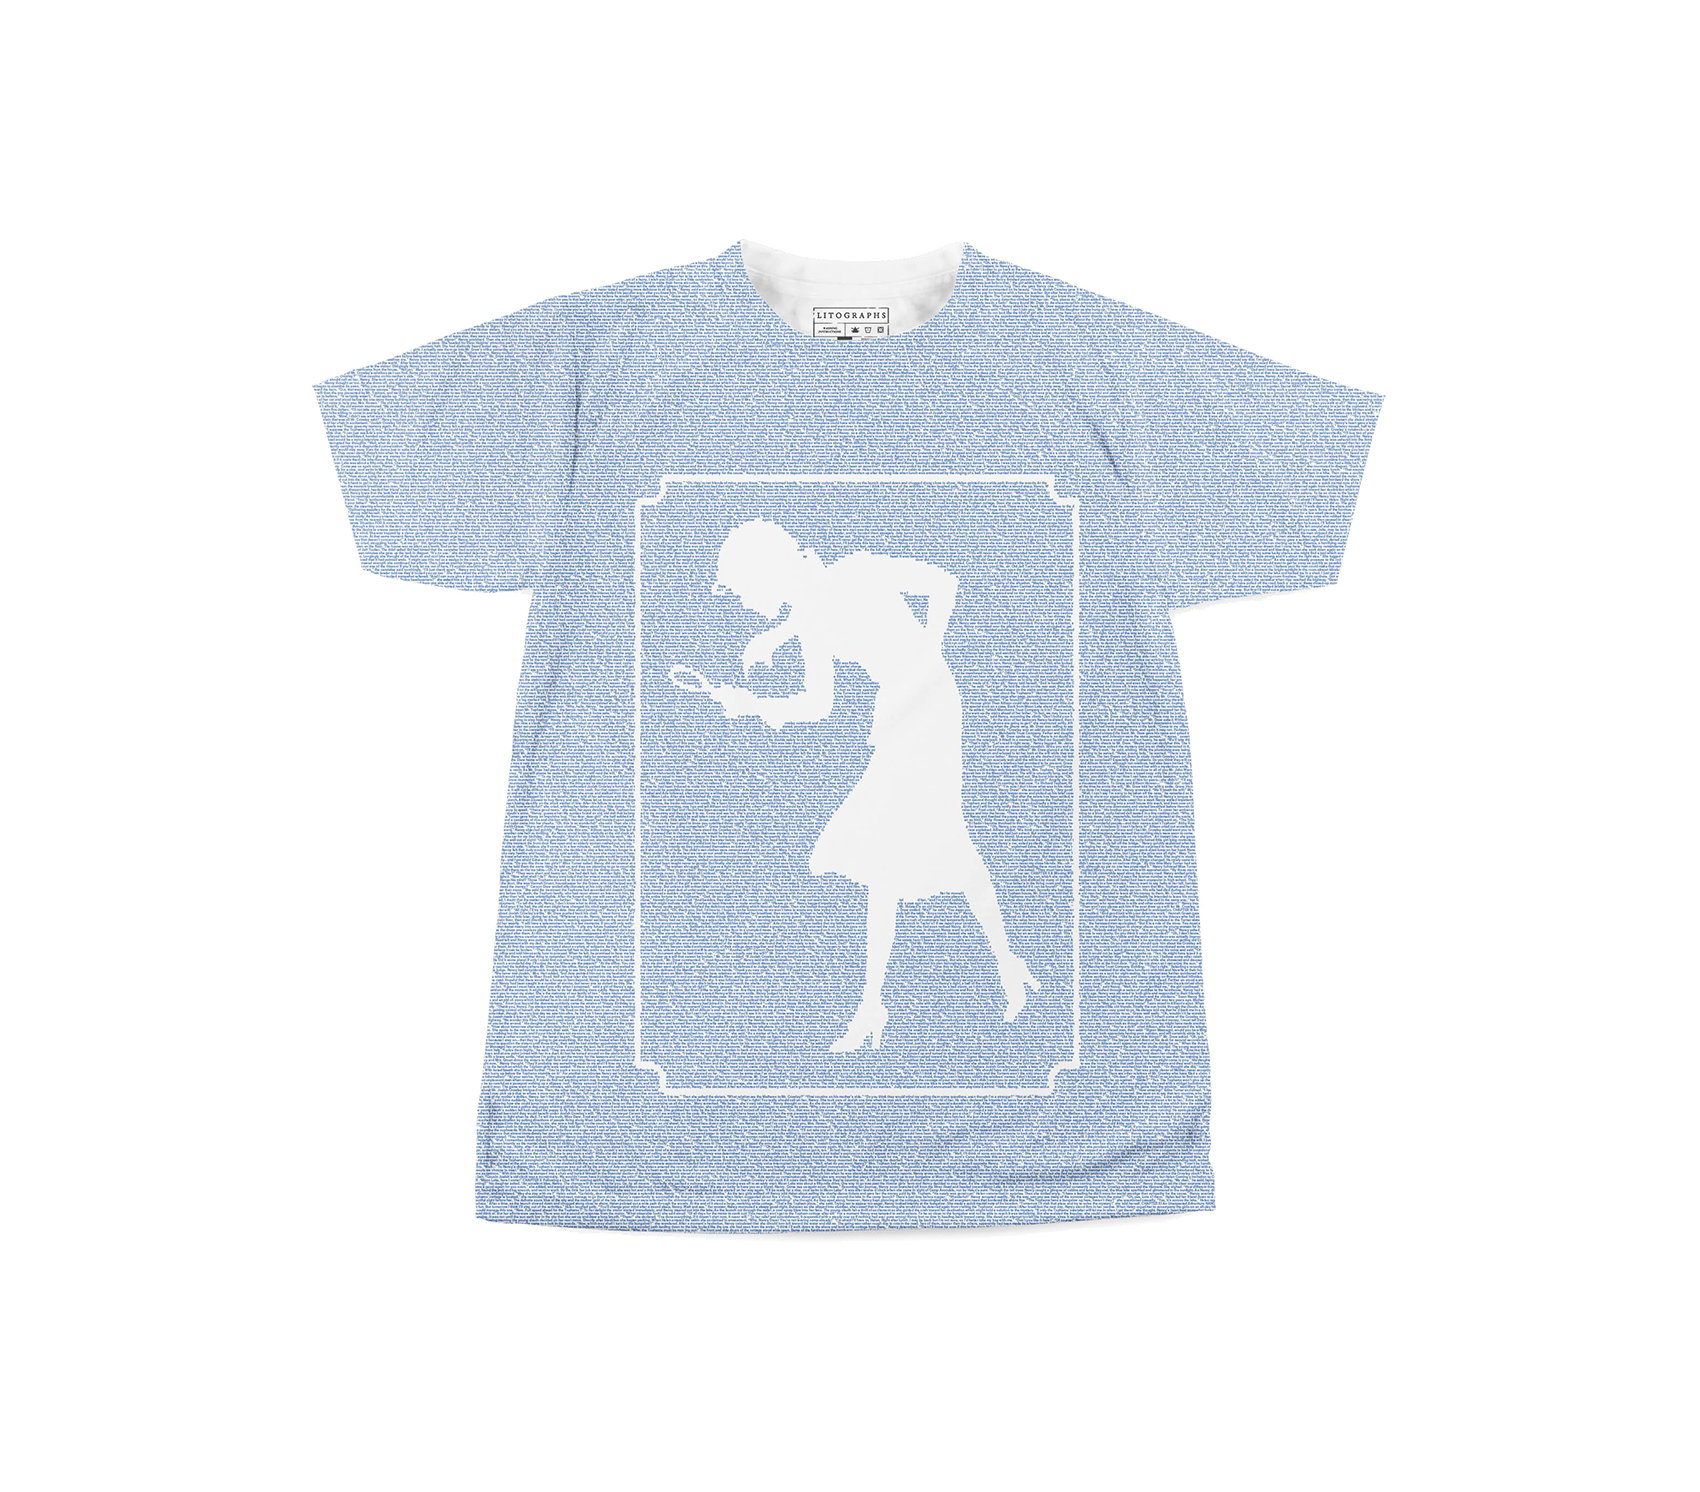 nancy-drew-tee-shirt